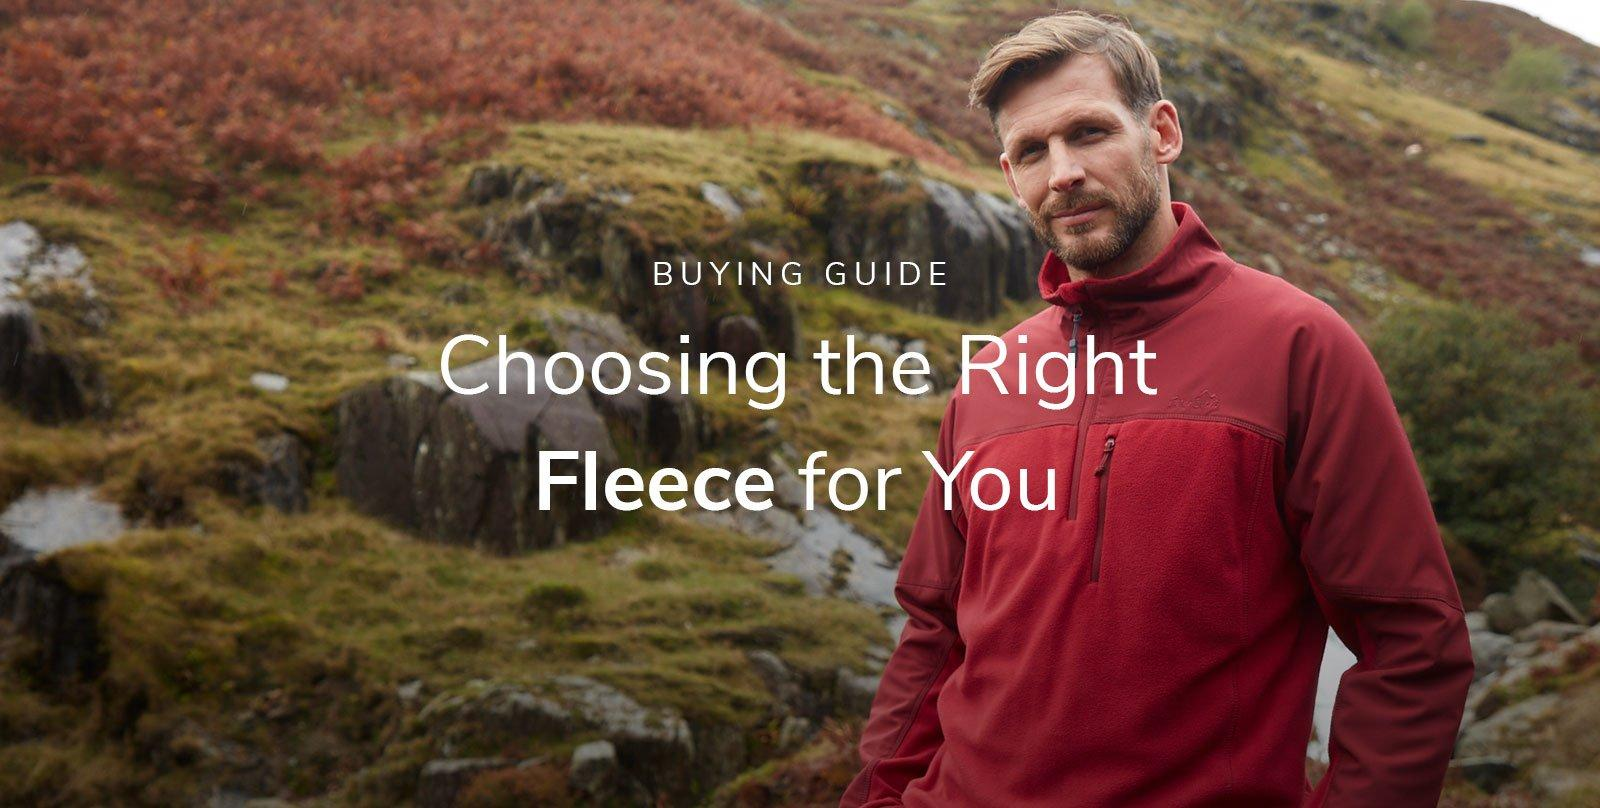 Fleece Buying Guide